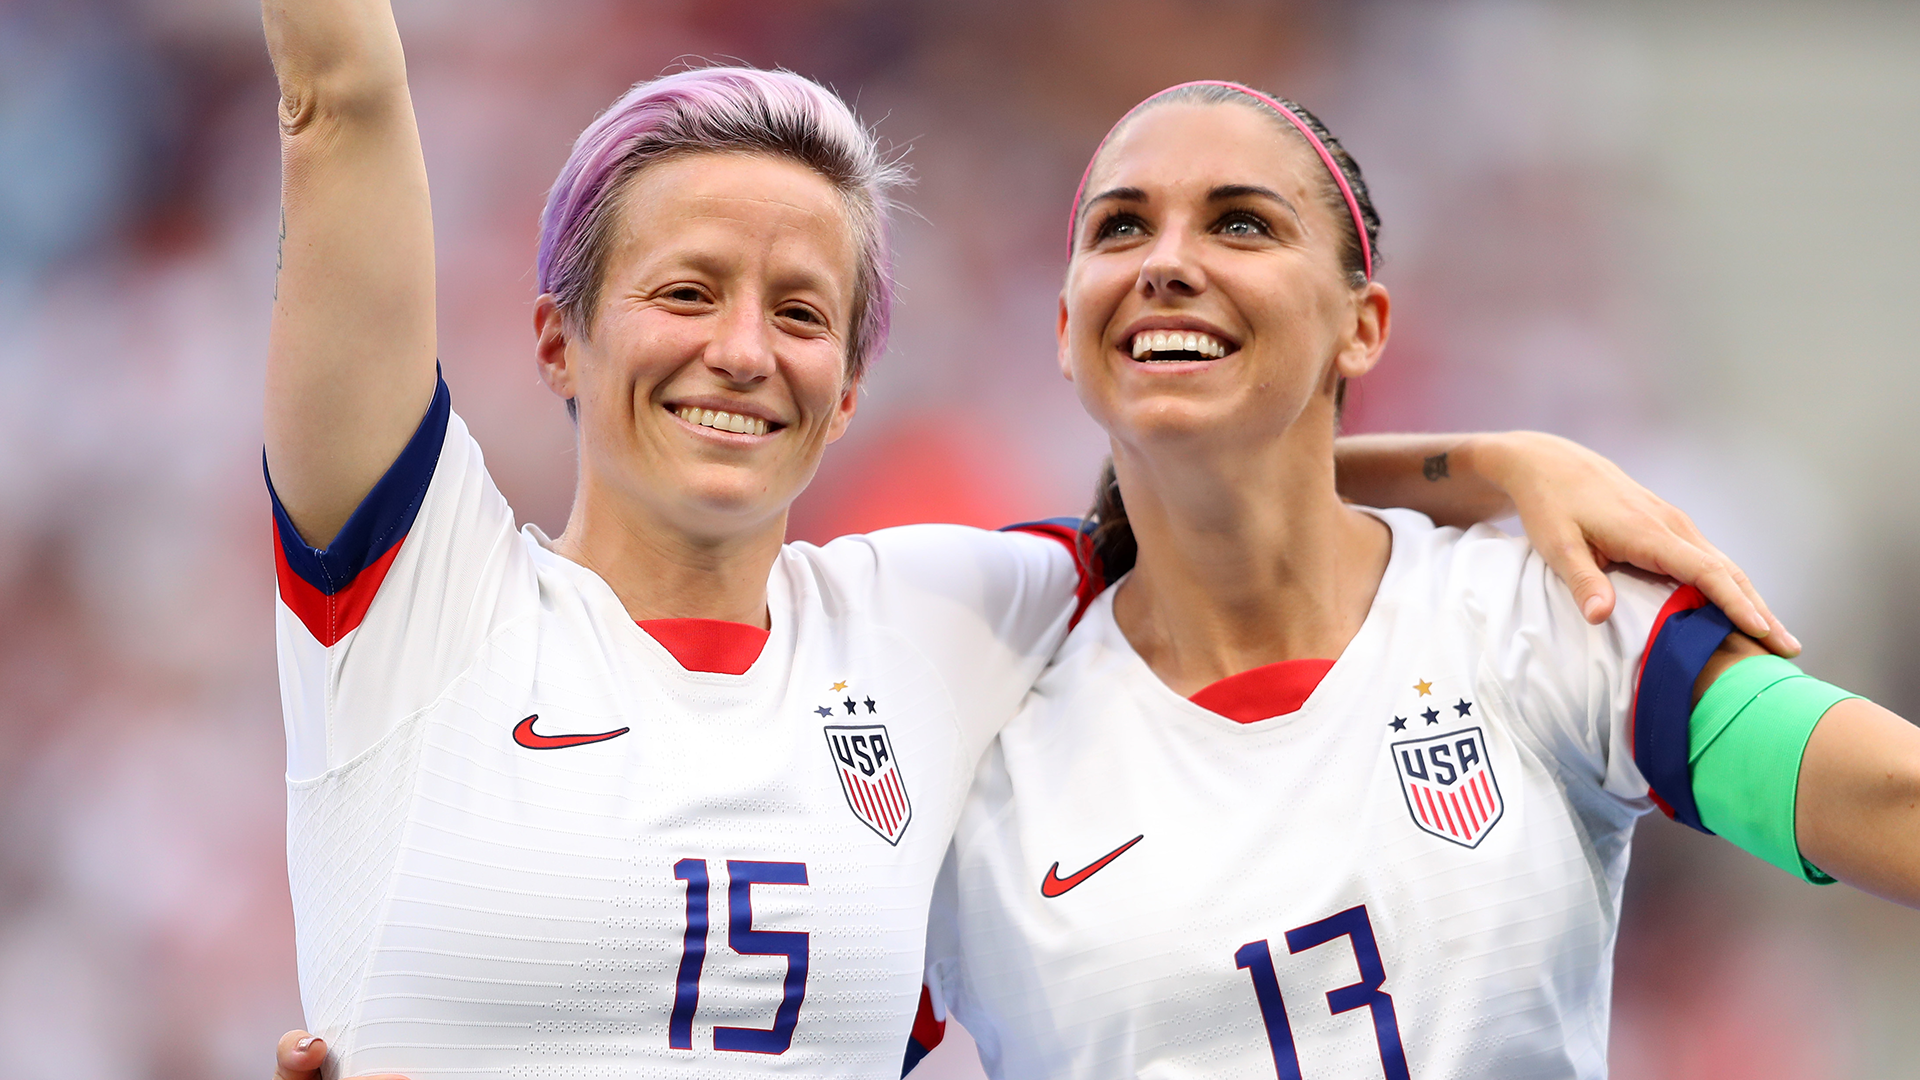 USWNT creates history with record-breaking gap to Germany in FIFA women's rankings